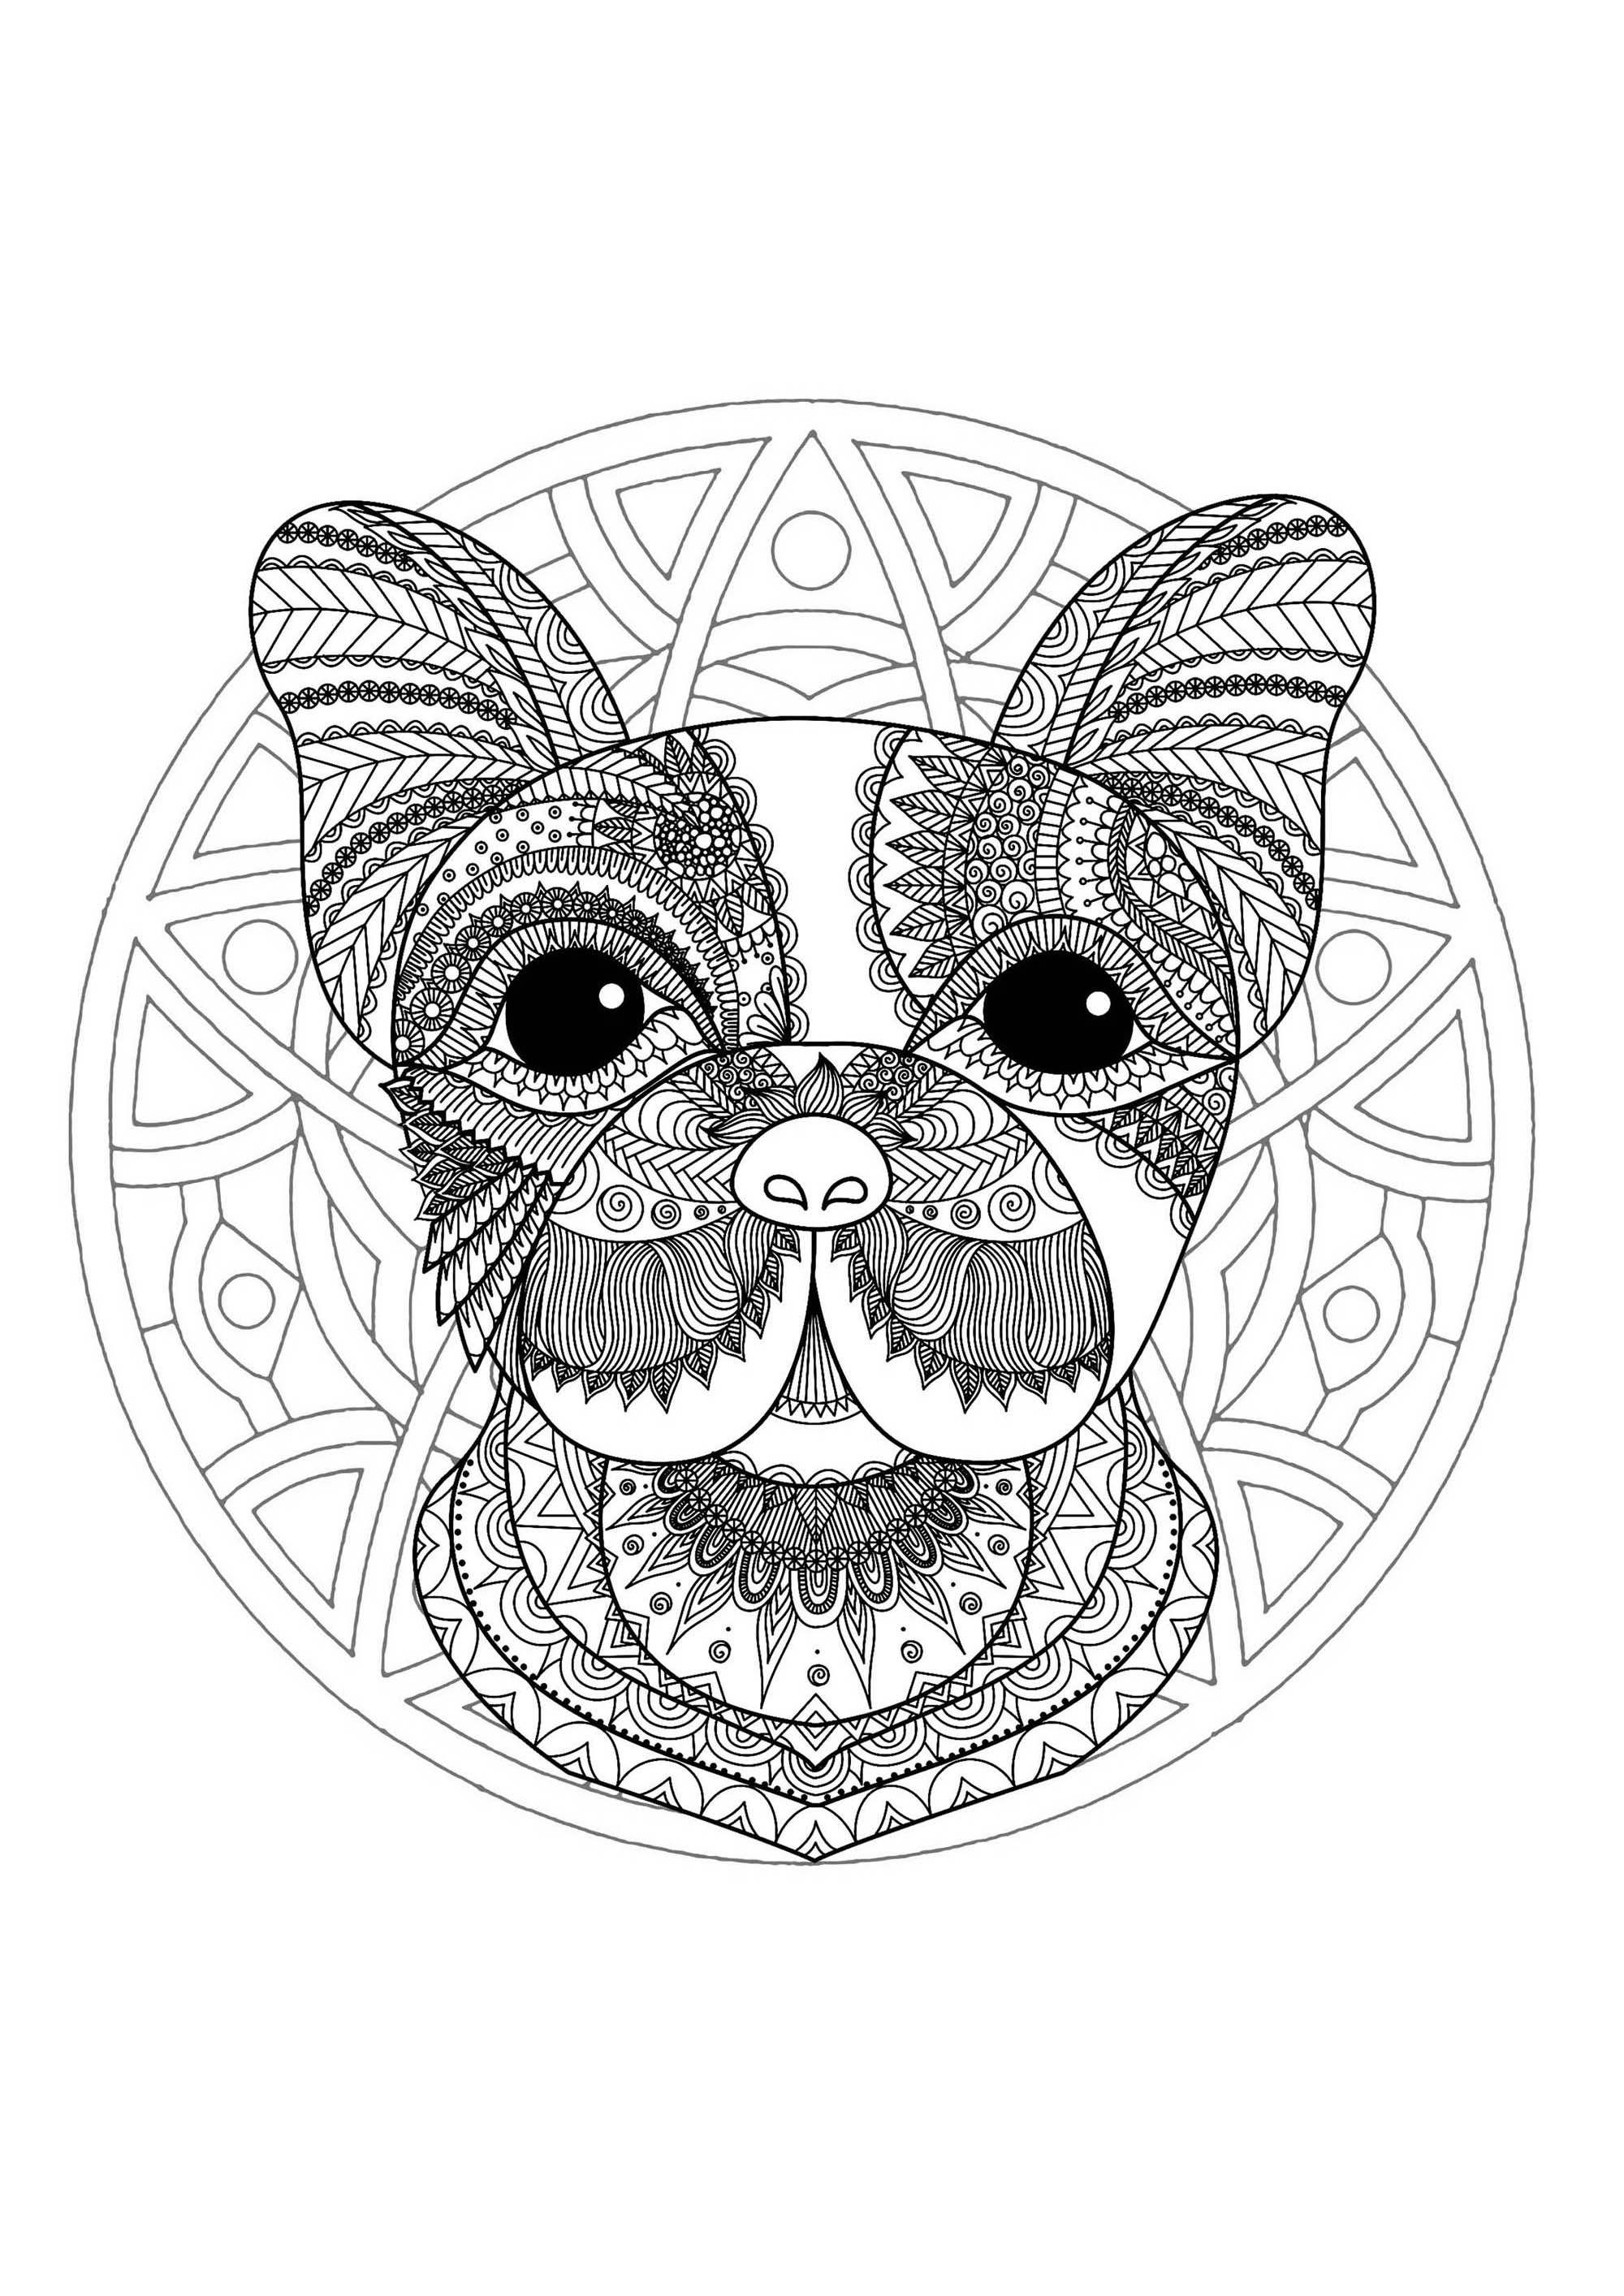 Otter Coloring Face Page